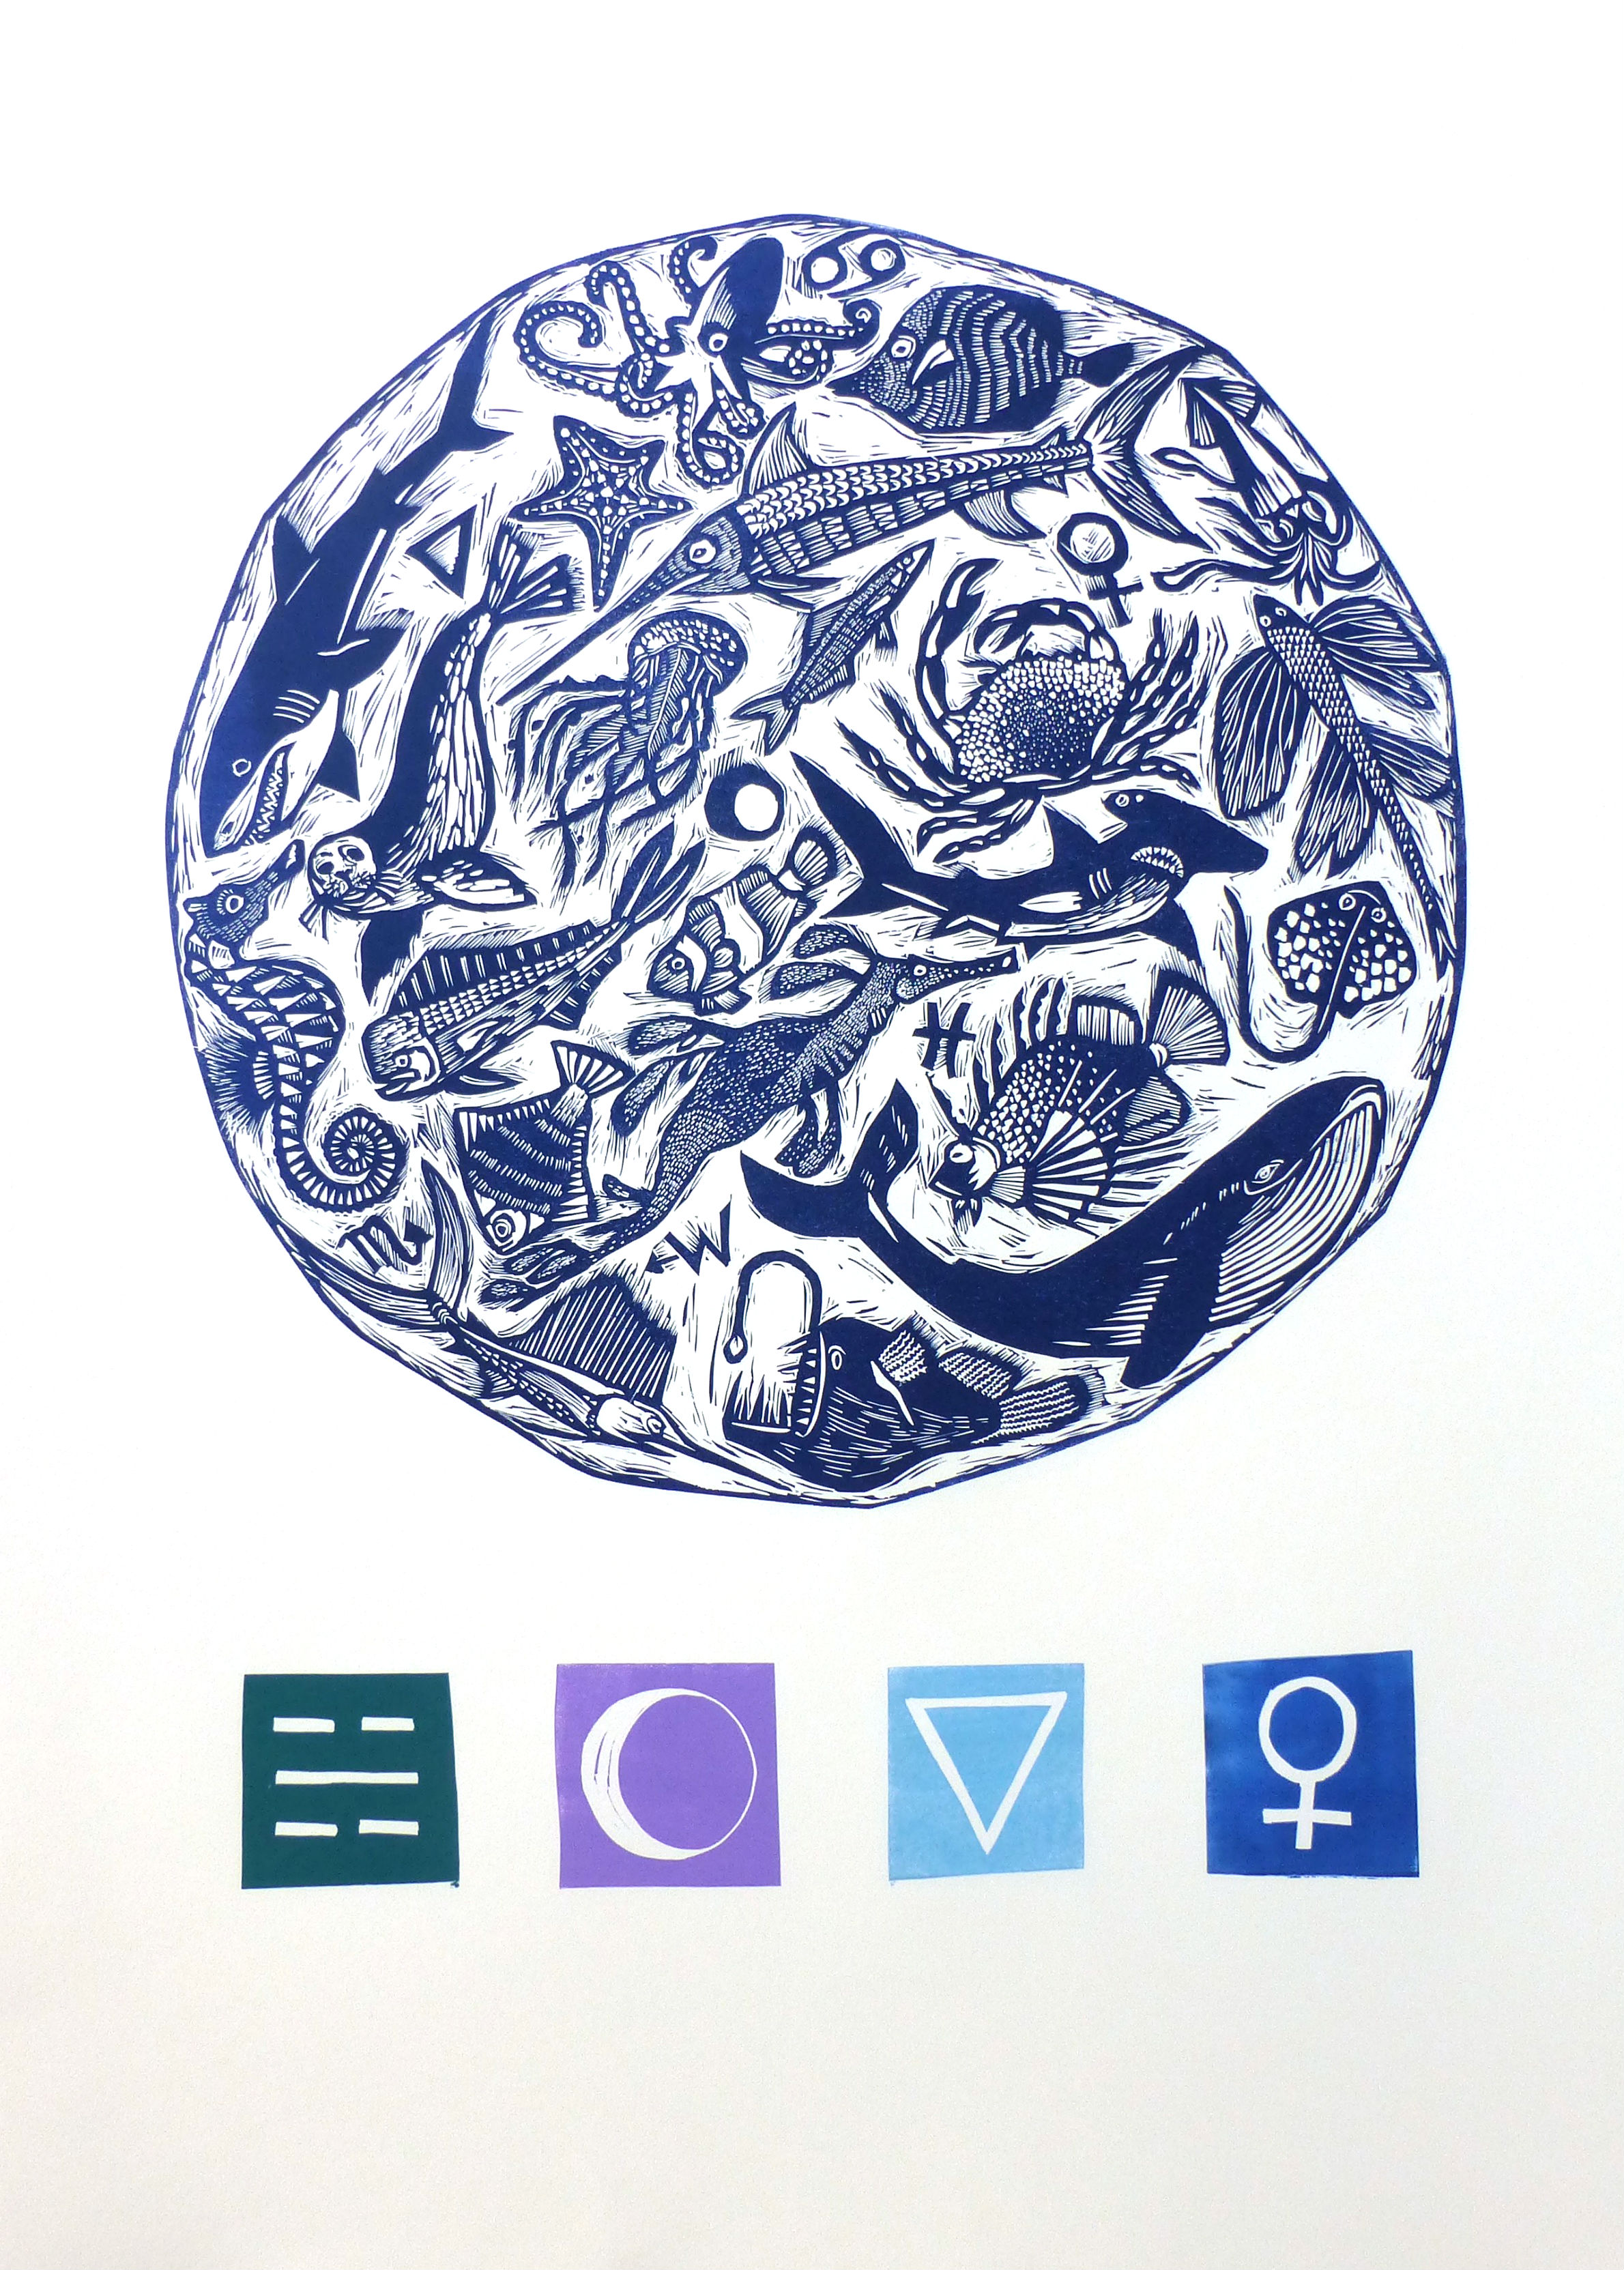 Element IV   Linocut, 2017 - Edition of 10  Paper size: 76 cm x 56 cm  $300  The idea that the world around us is made up of four different elements – earth, fire, air and water – can be found in many cultures. Ancient Greeks believed that the elements were the building blocks of the universe, and by understanding the elements they could understand not just their surrounds but people themselves. At a time when science was entwined with philosophy, mythology and religion, symbols were constructed to represent these elements. The four elements also came to be individually associated with many other things including the various phases of the moon, the different seasons, cardinal directions, astrological signs and colours.